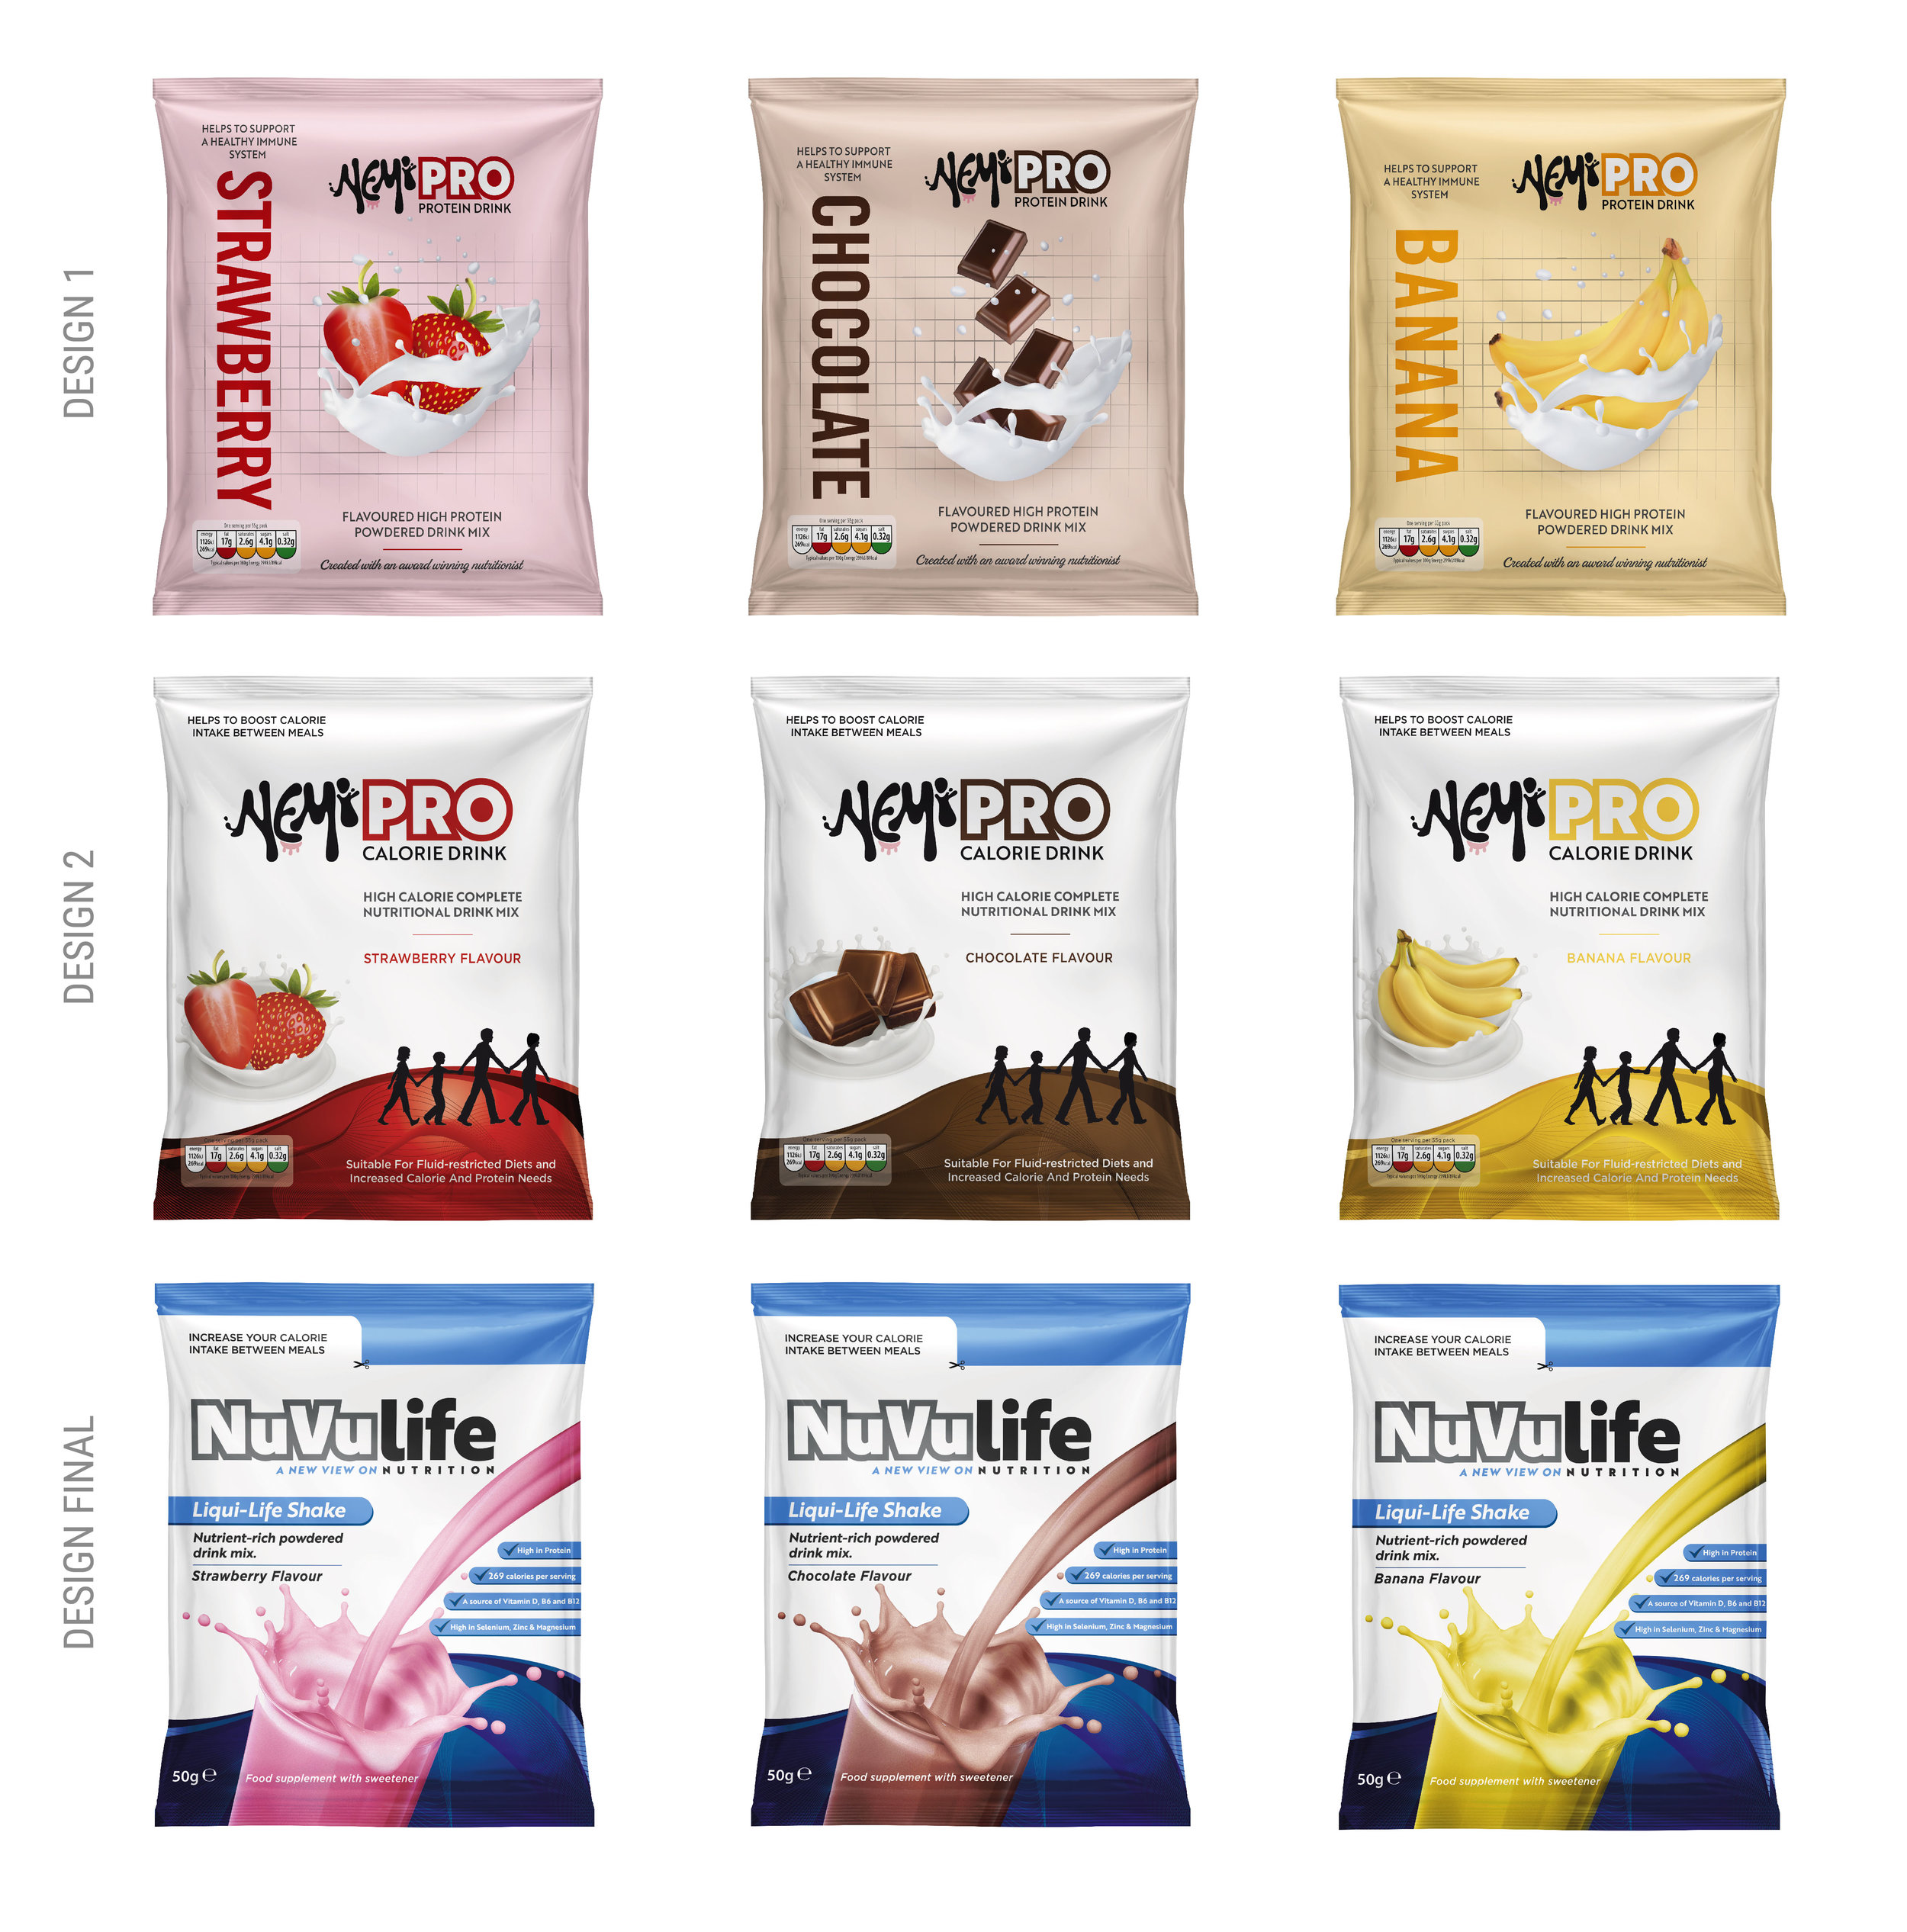 NuVulife Nutritional shake drink. Design concepts through to the chosen design.